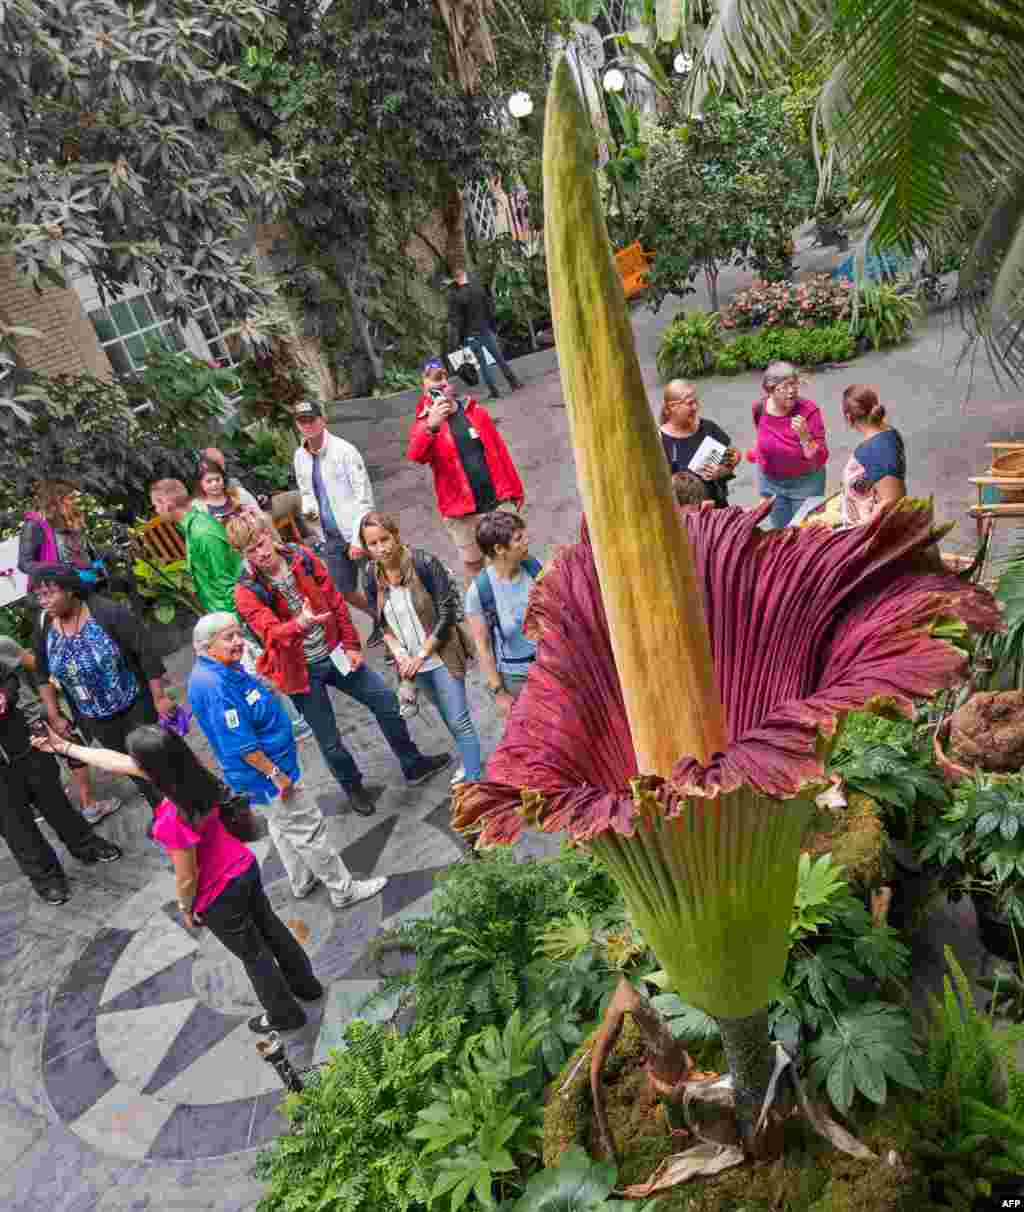 Visitors look at a blooming Corpse Flower (Titan Arum) that grew to 99.5 inches (252.7 cm) at the US Botanical Garden on August 29, 2017, in Washington, DC.